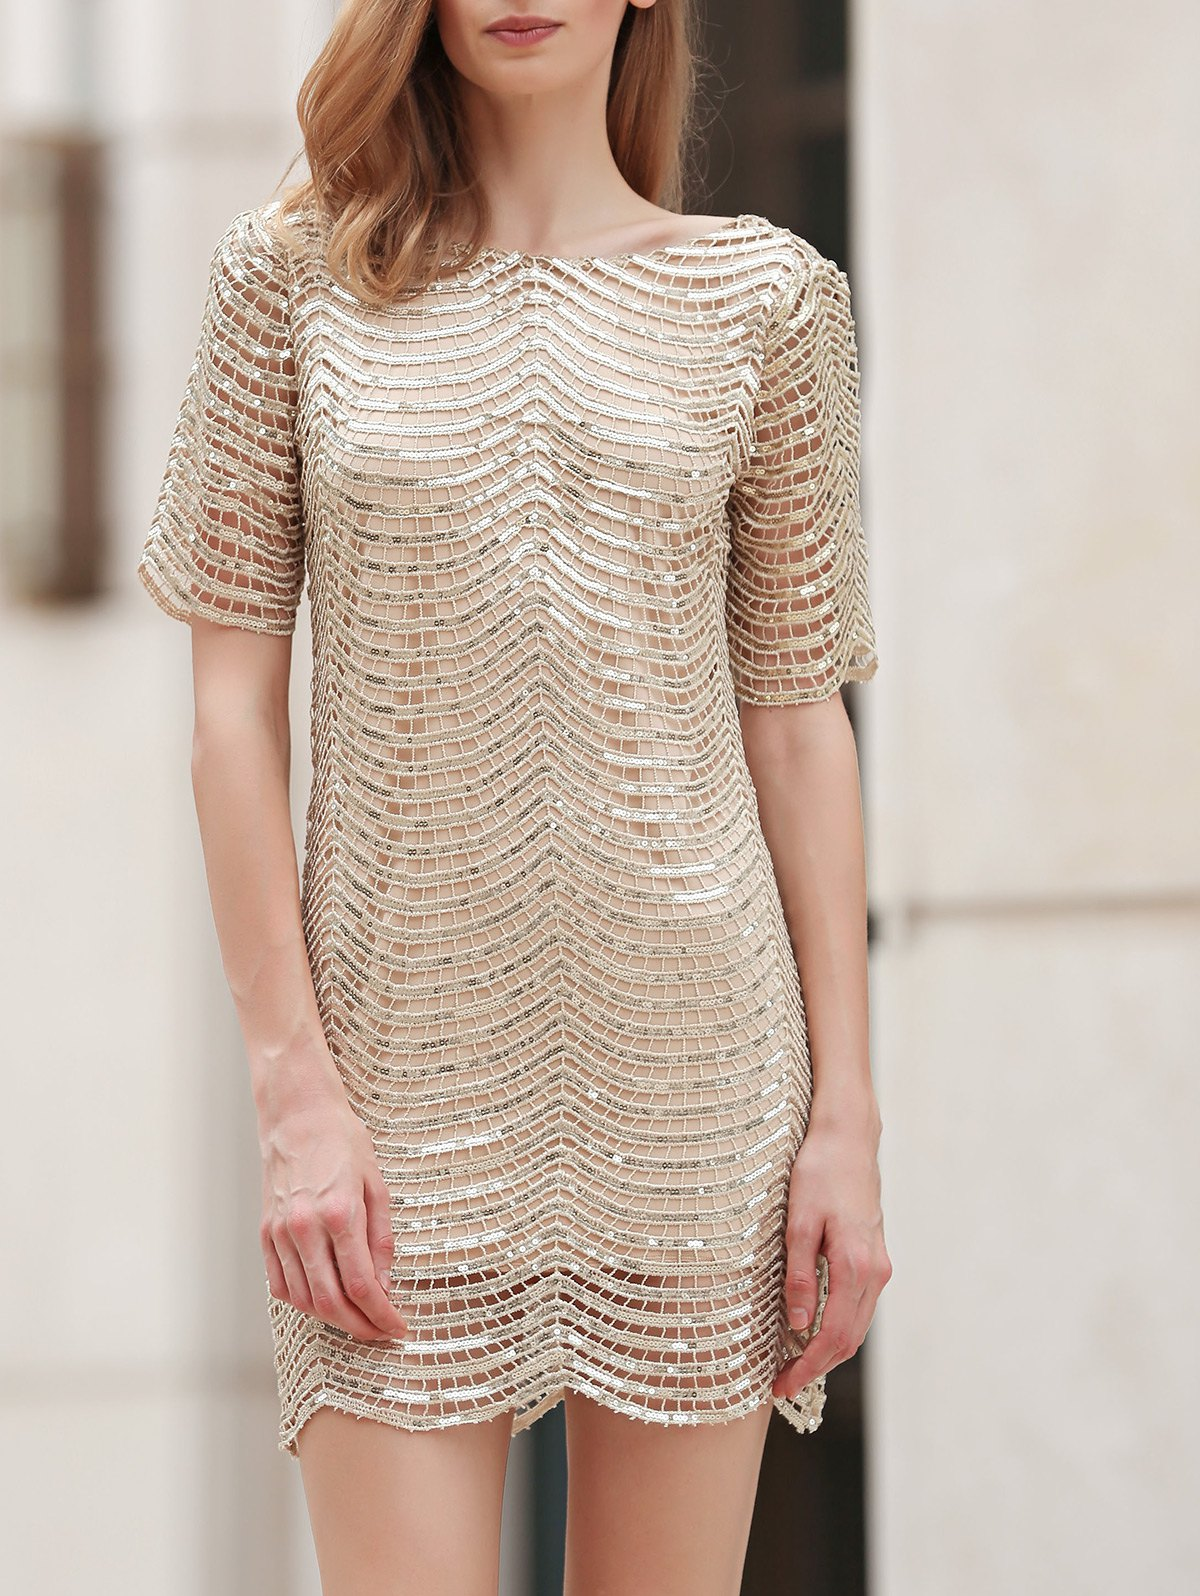 Scoop Neck Half Sleeve Sequins Dress